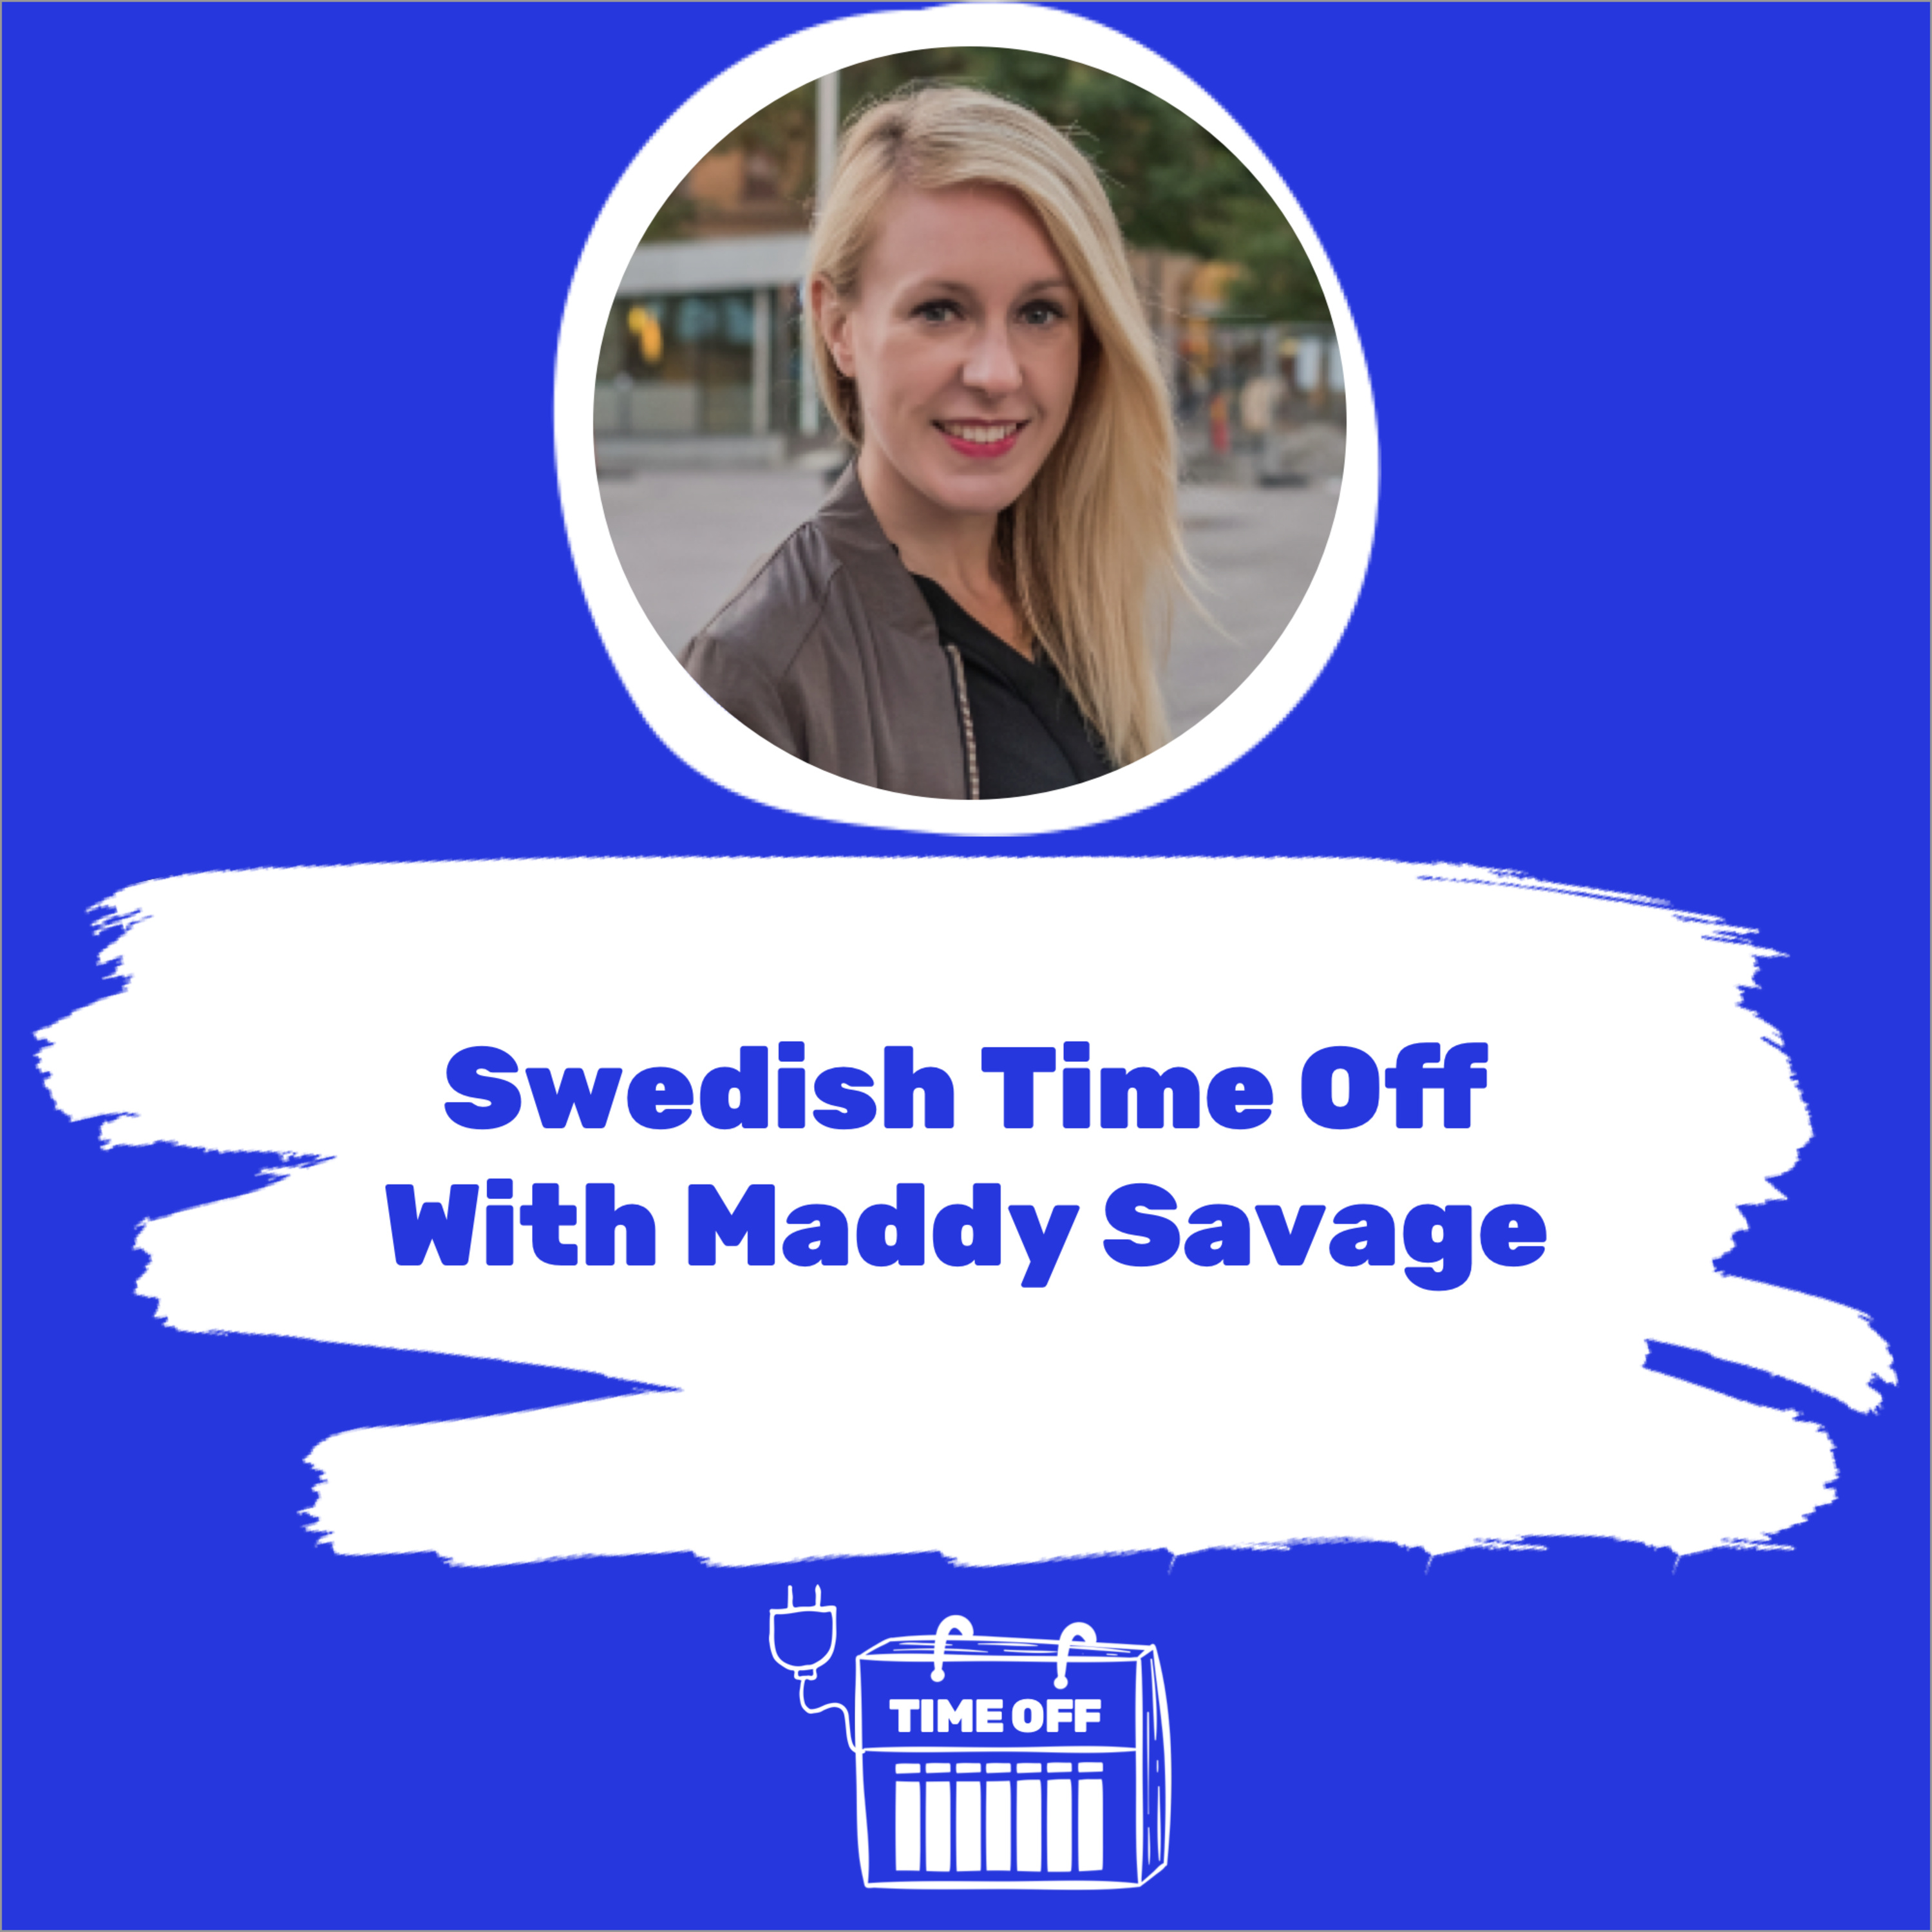 Swedish Time Off With Maddy Savage